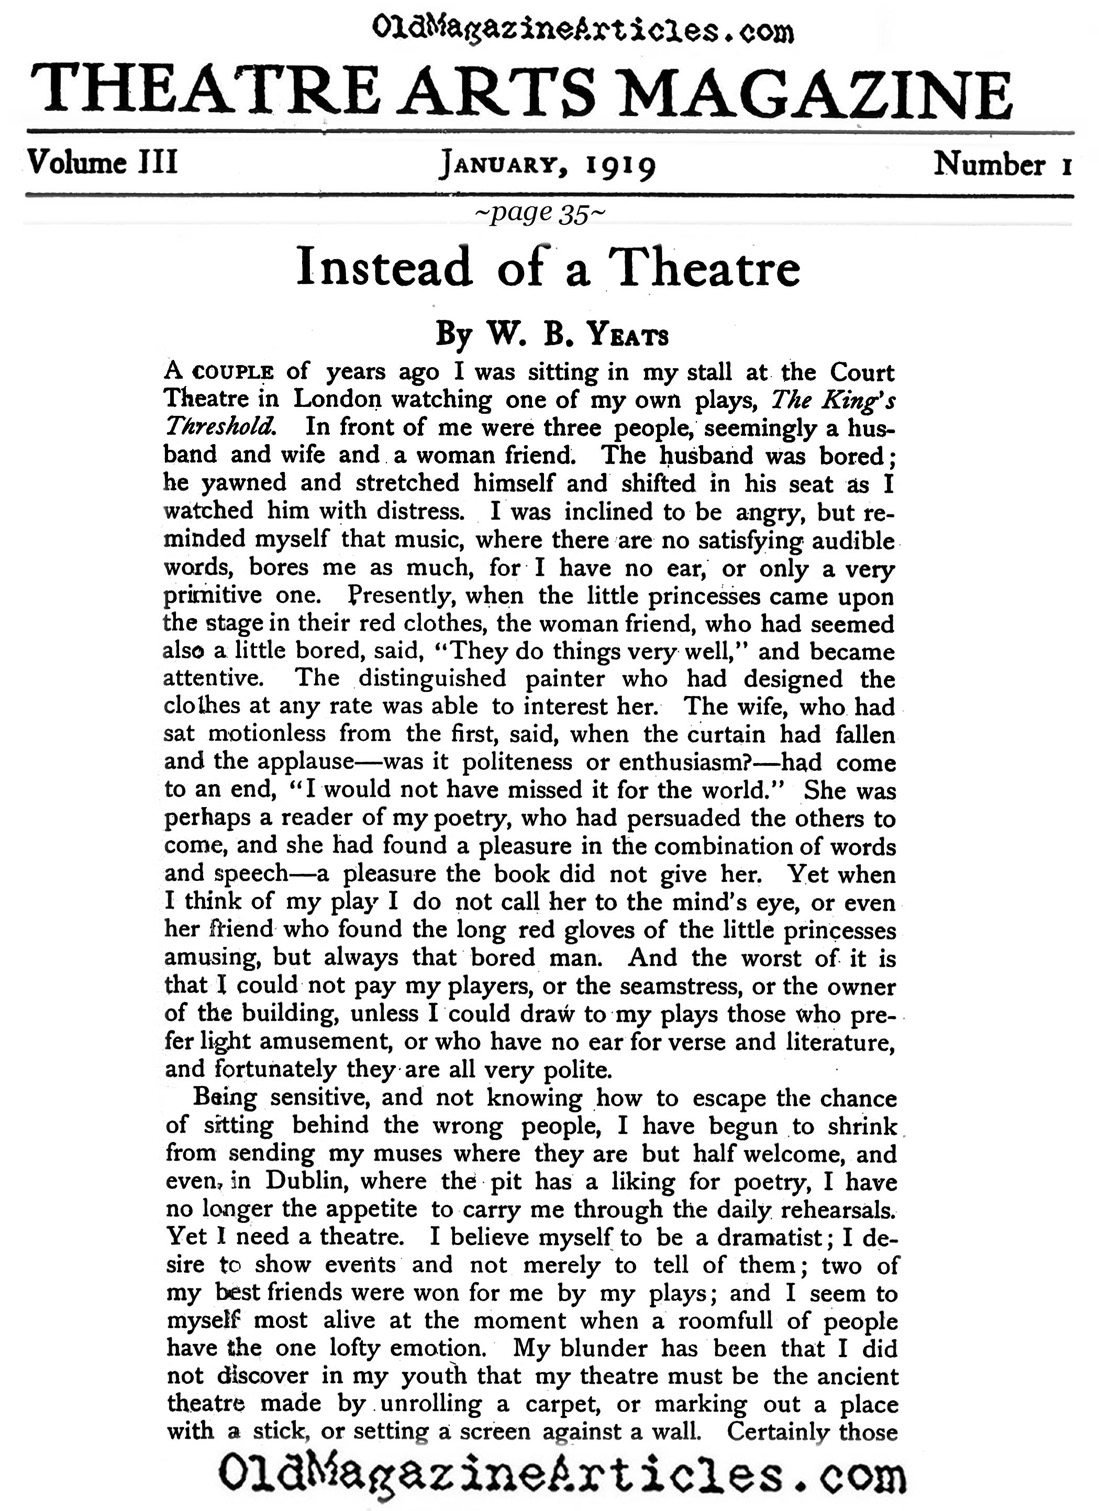 W.B. Yeats  Gripes About the Theater-Going Bourgeoisie <BR>(Theatre Arts Magazine, 1919)